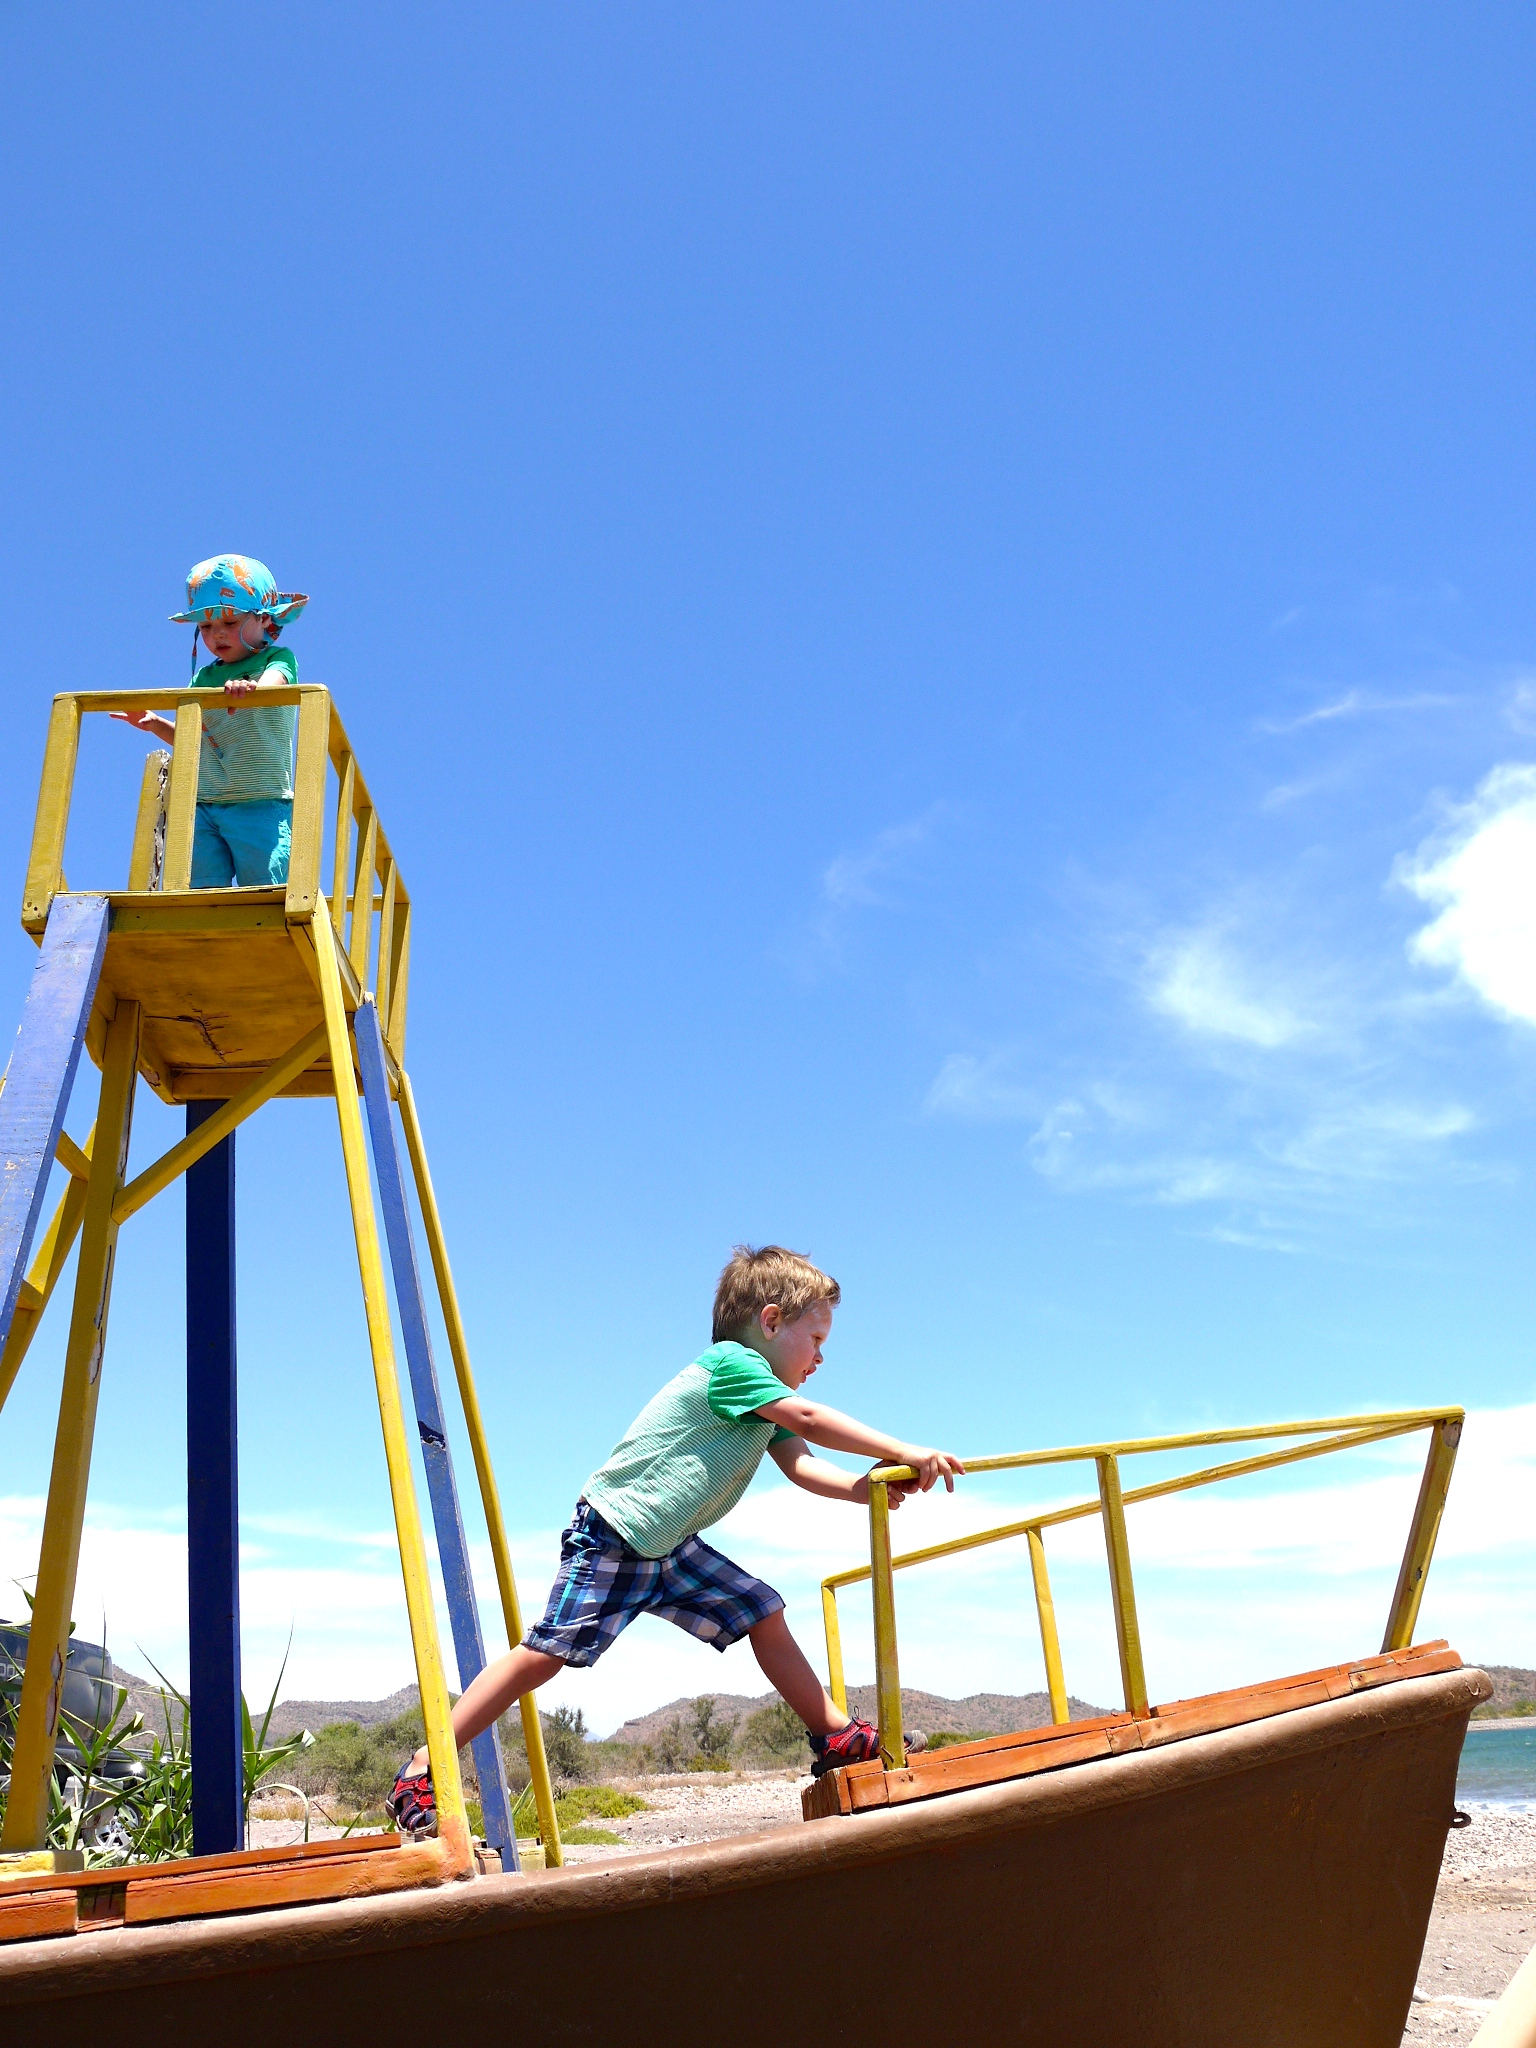 With a big play area to keep the kids occupied, Vista al Mar makes for a very relaxing afternoon.